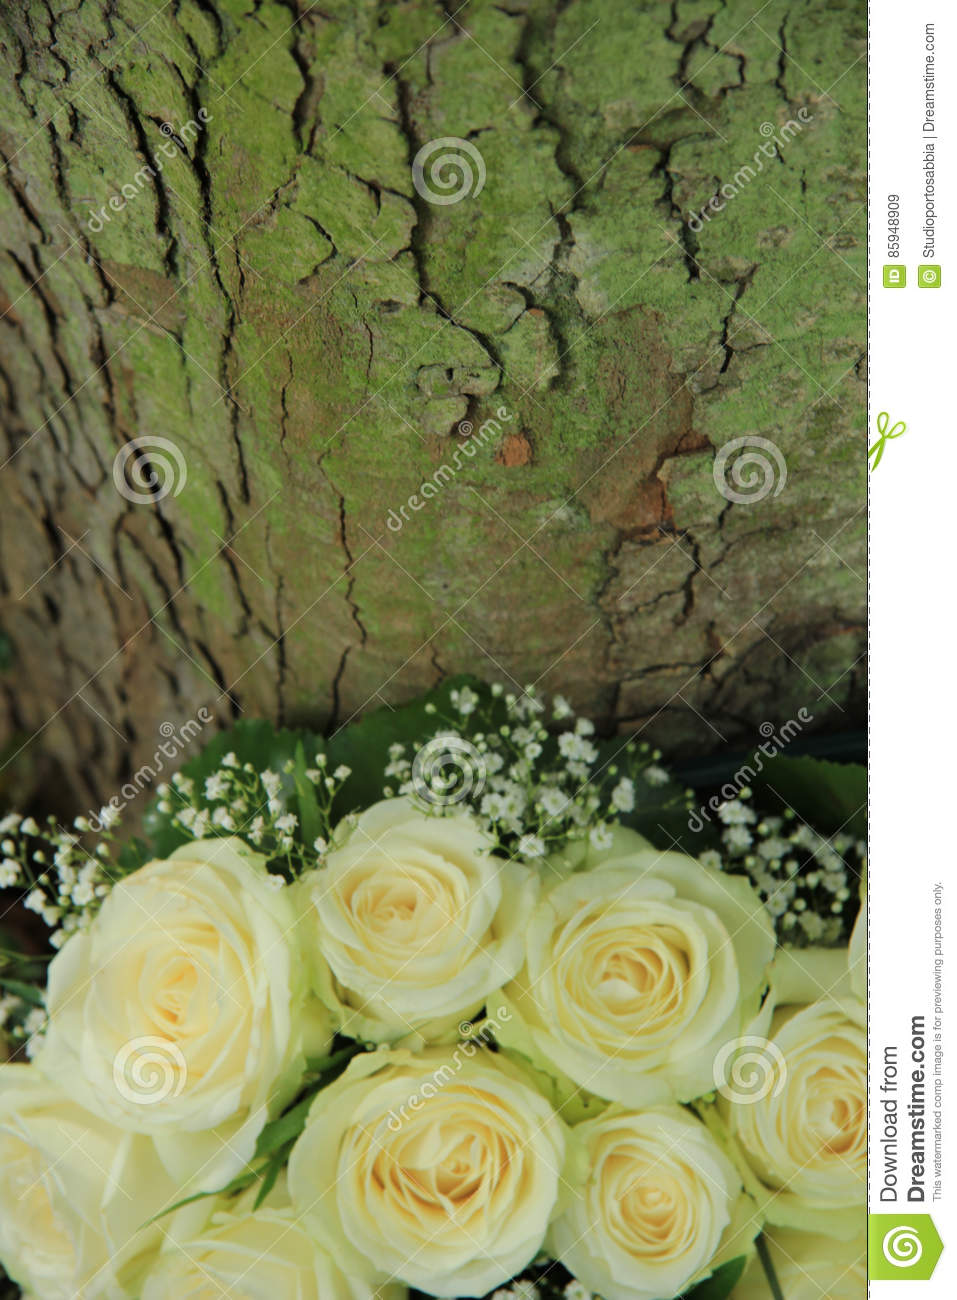 Outdoor Wedding Decorations: White Flowers Stock Image - Image of ...